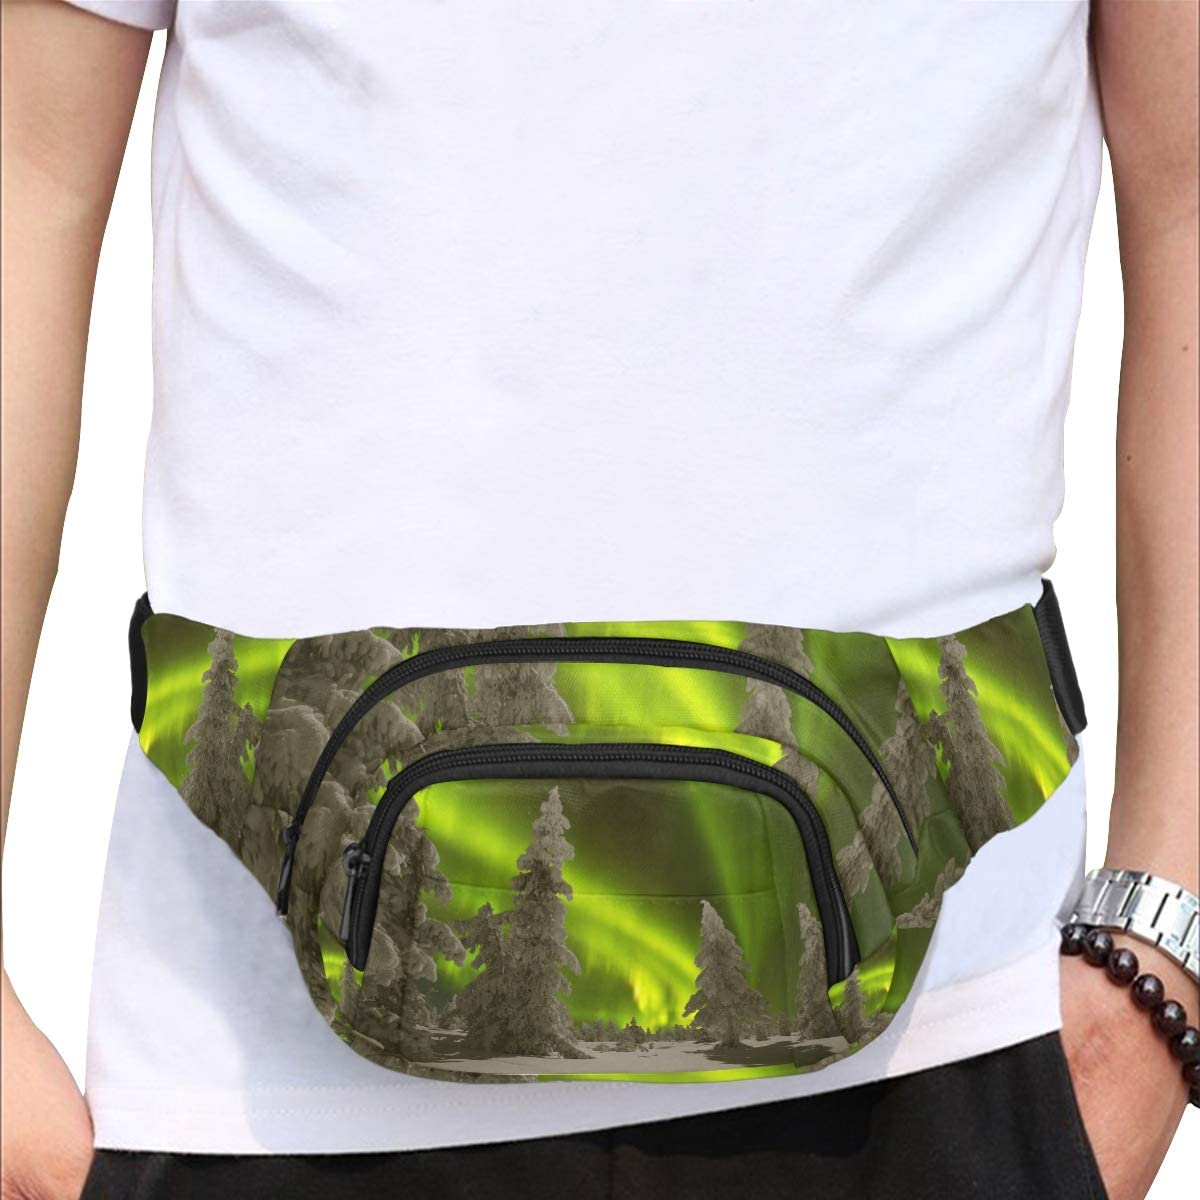 Winter Night With Polar Light Fenny Packs Waist Bags Adjustable Belt Waterproof Nylon Travel Running Sport Vacation Party For Men Women Boys Girls Kids